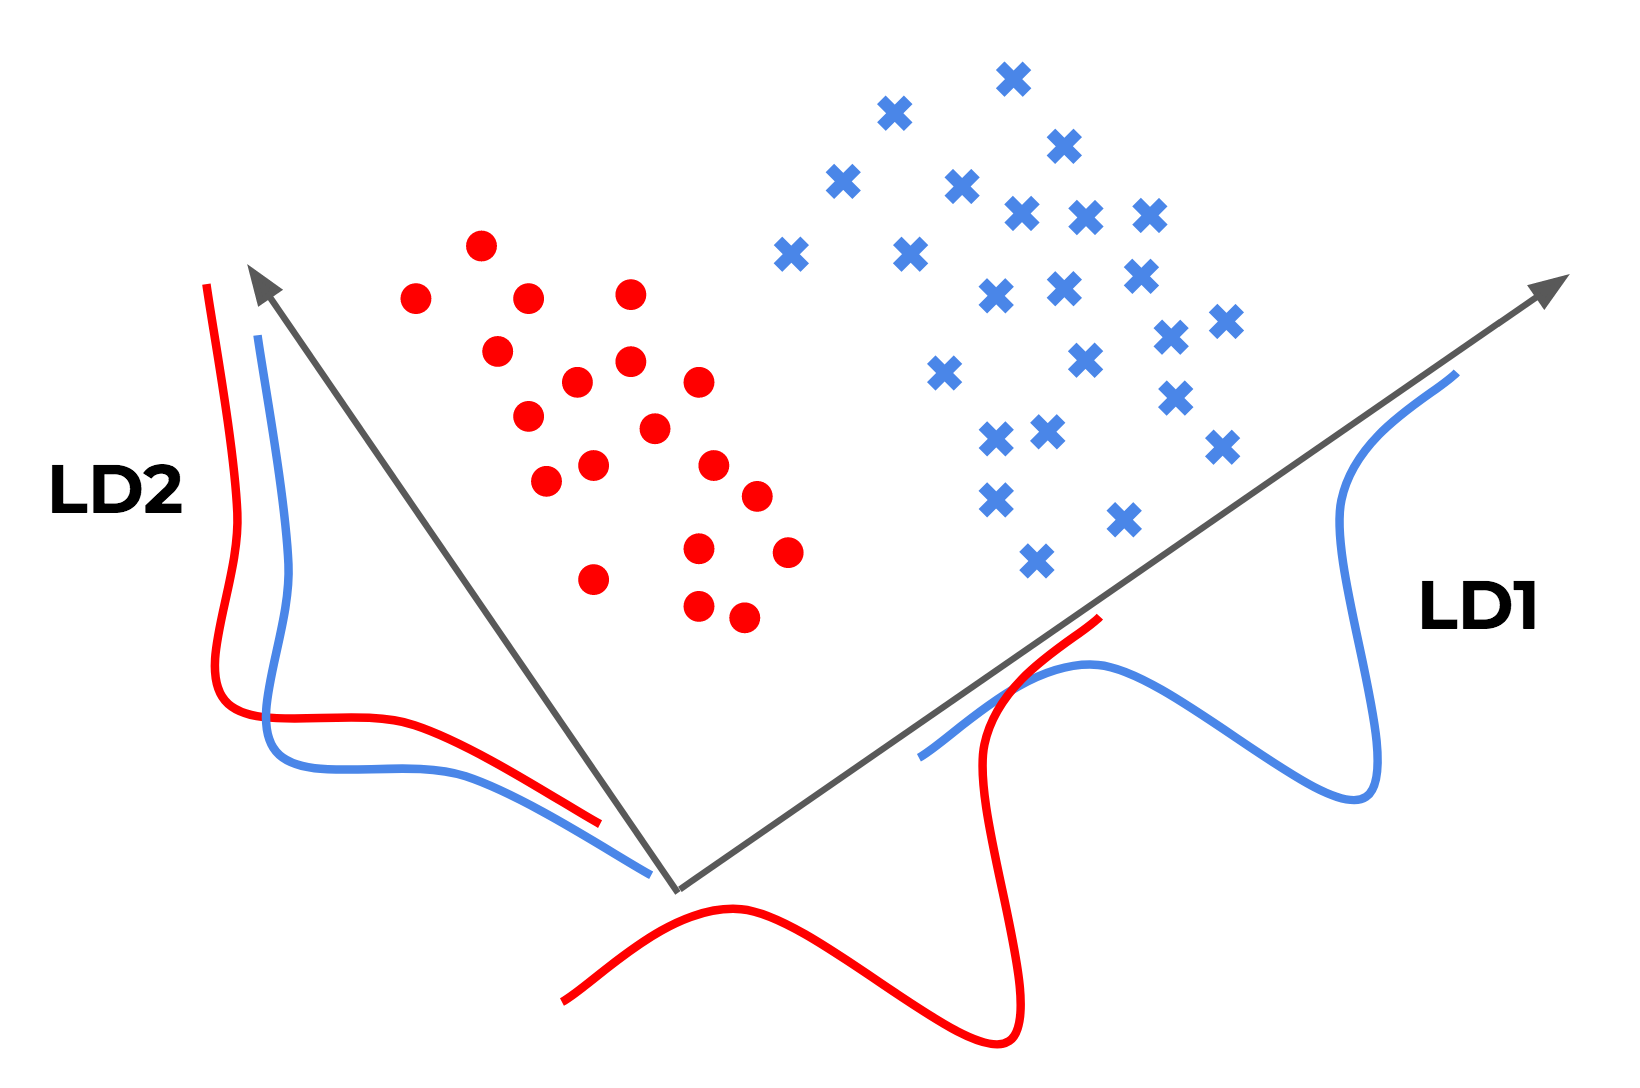 Projections of two-dimensional data (in two clusters) onto the x and y axes